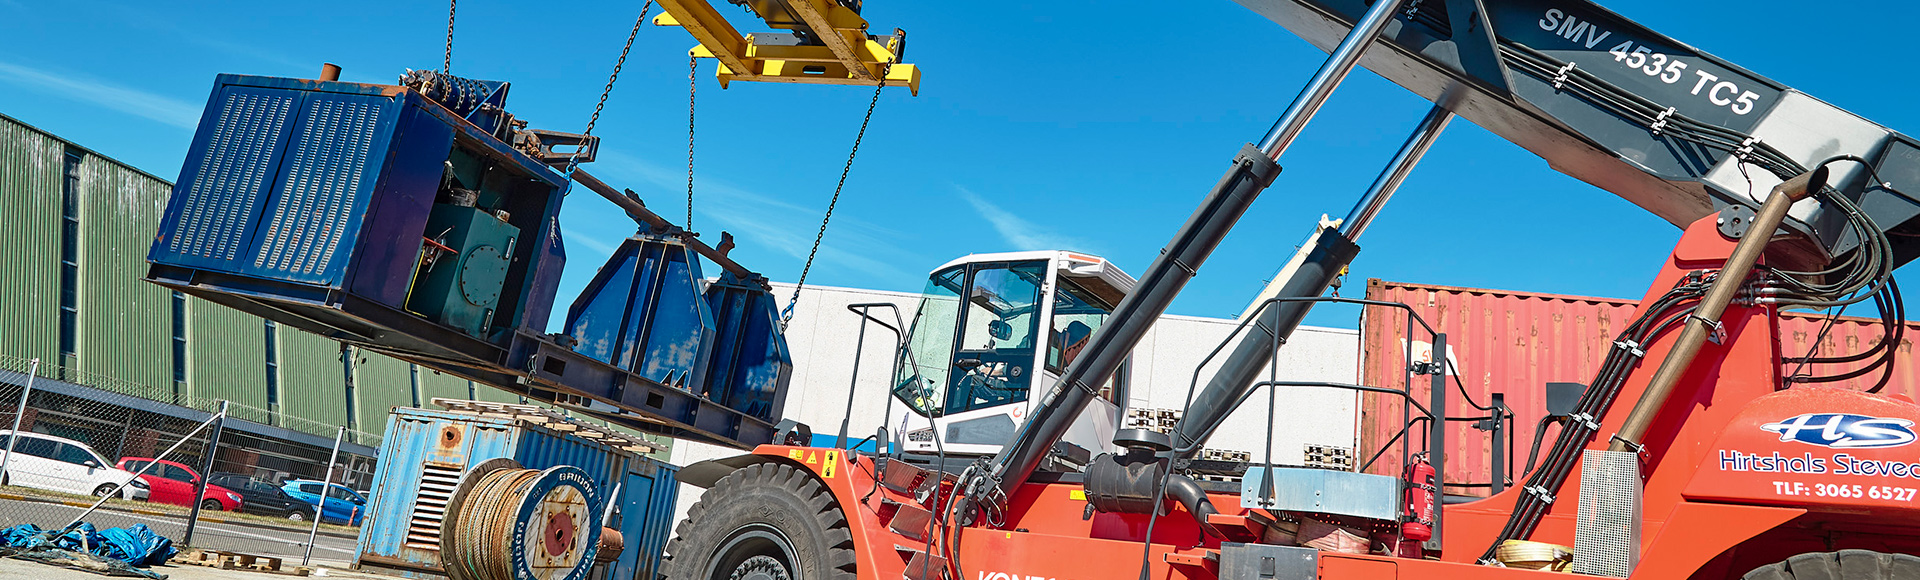 Hirtshals Stevedore chooses fairly new, used reach stacker